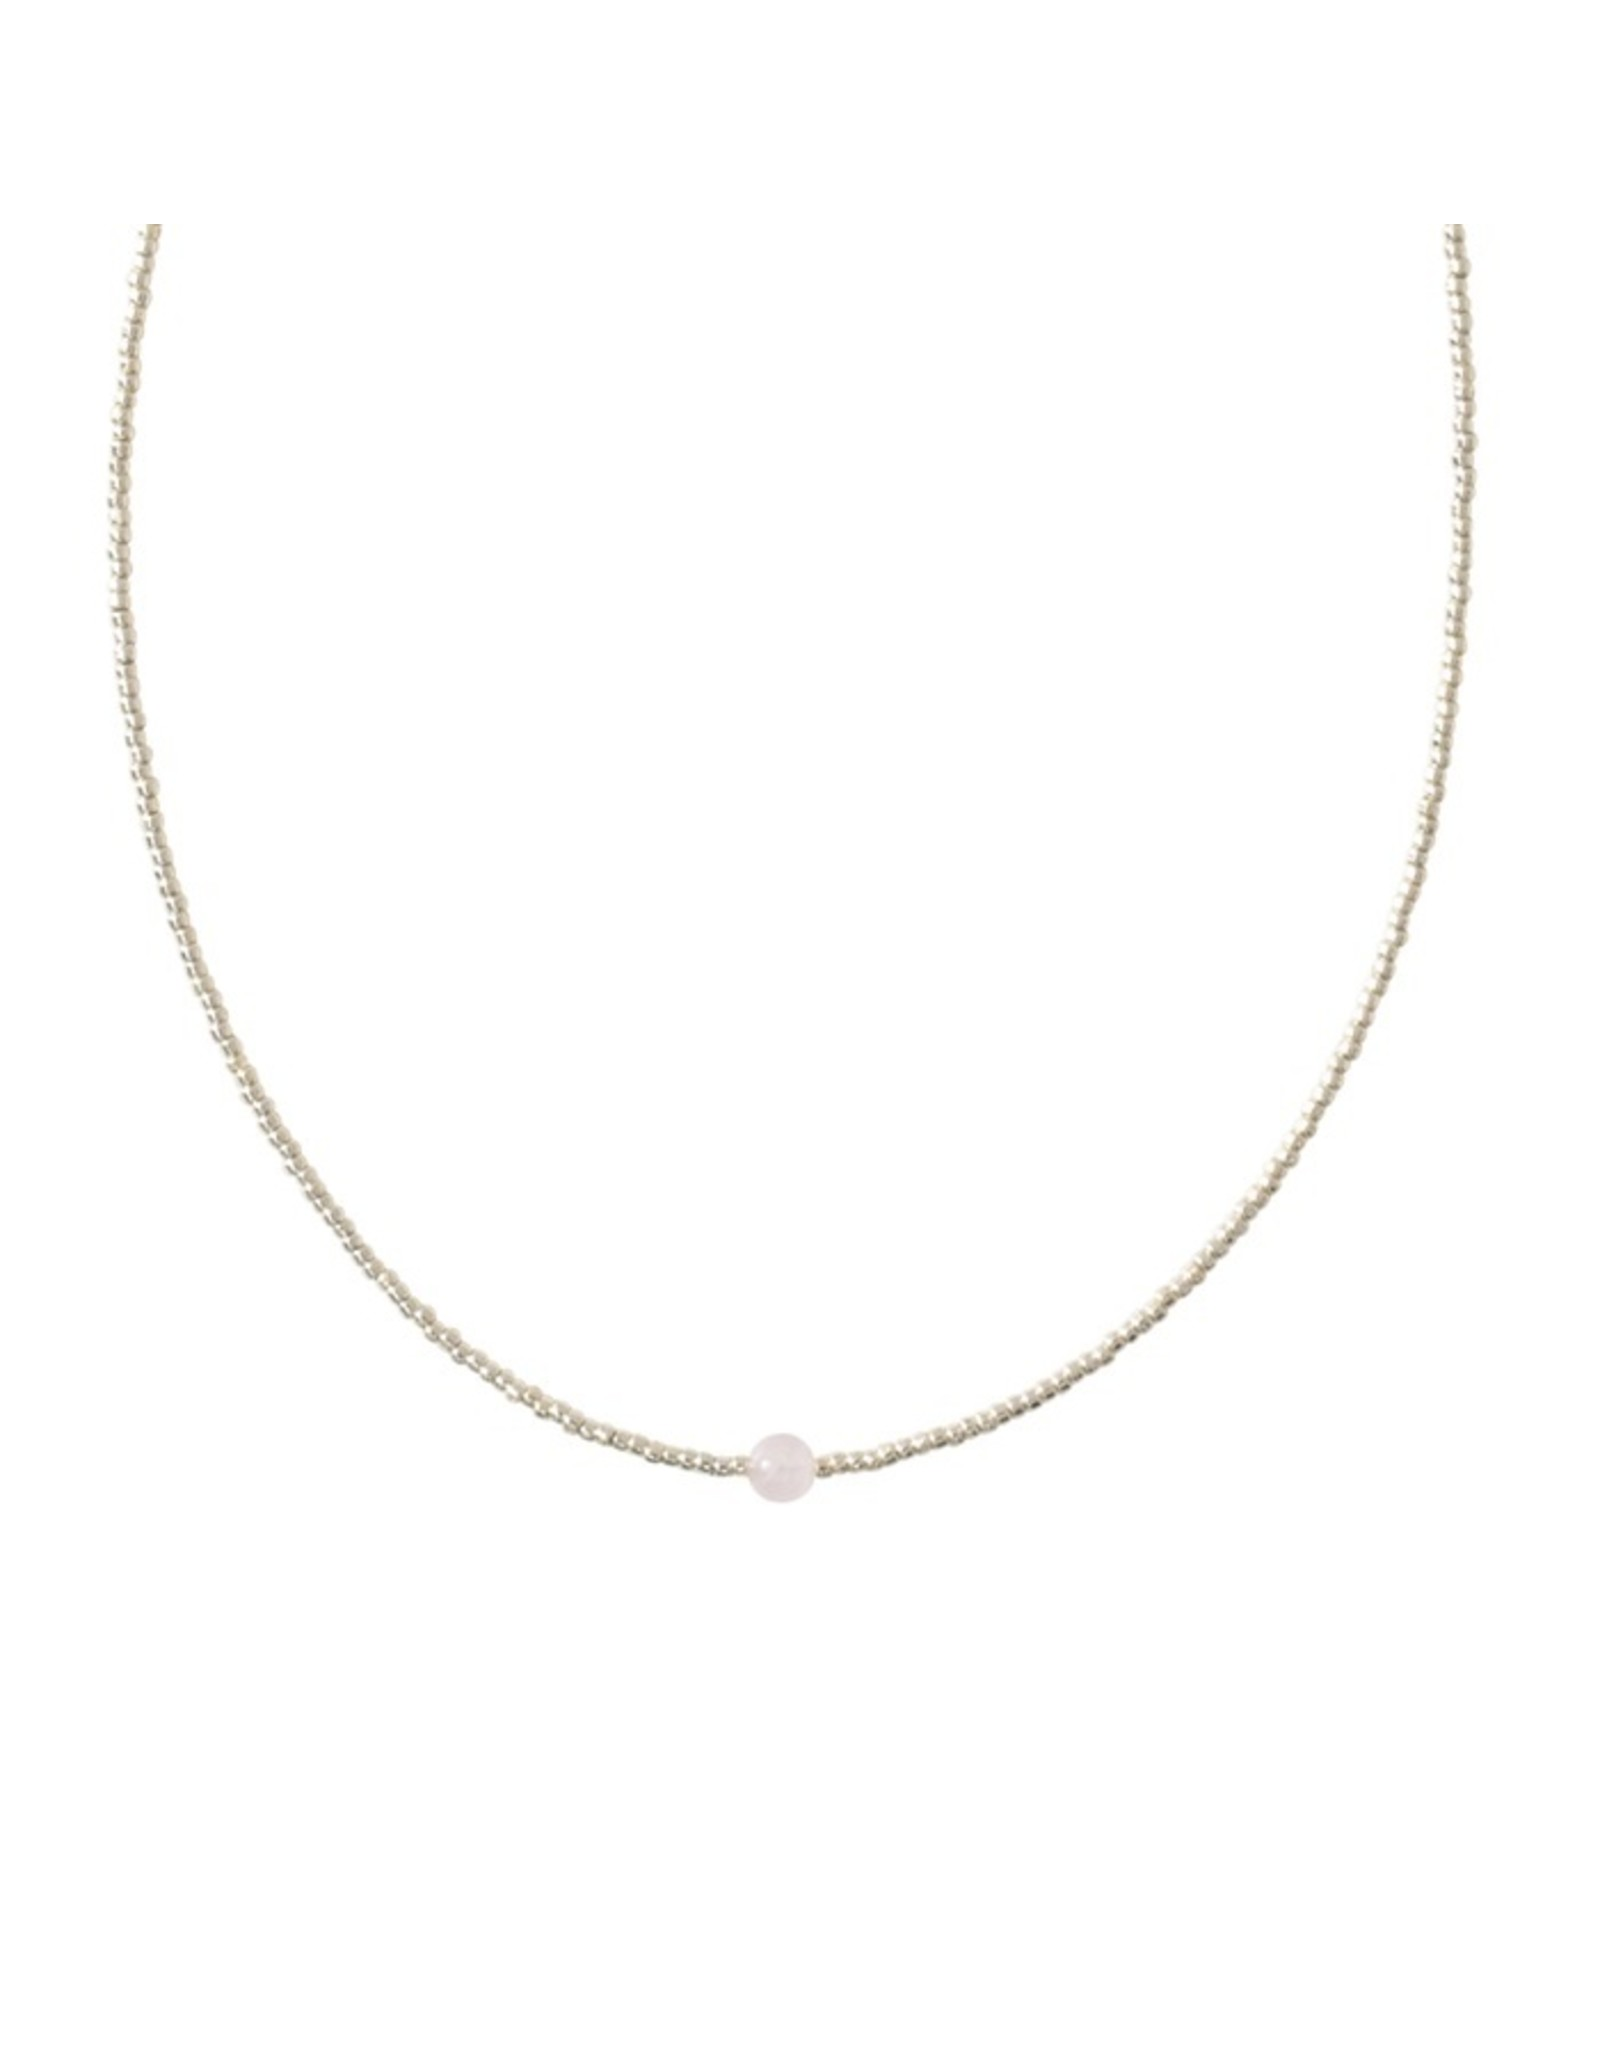 A beautiful Story Flora Silver Plated Necklace